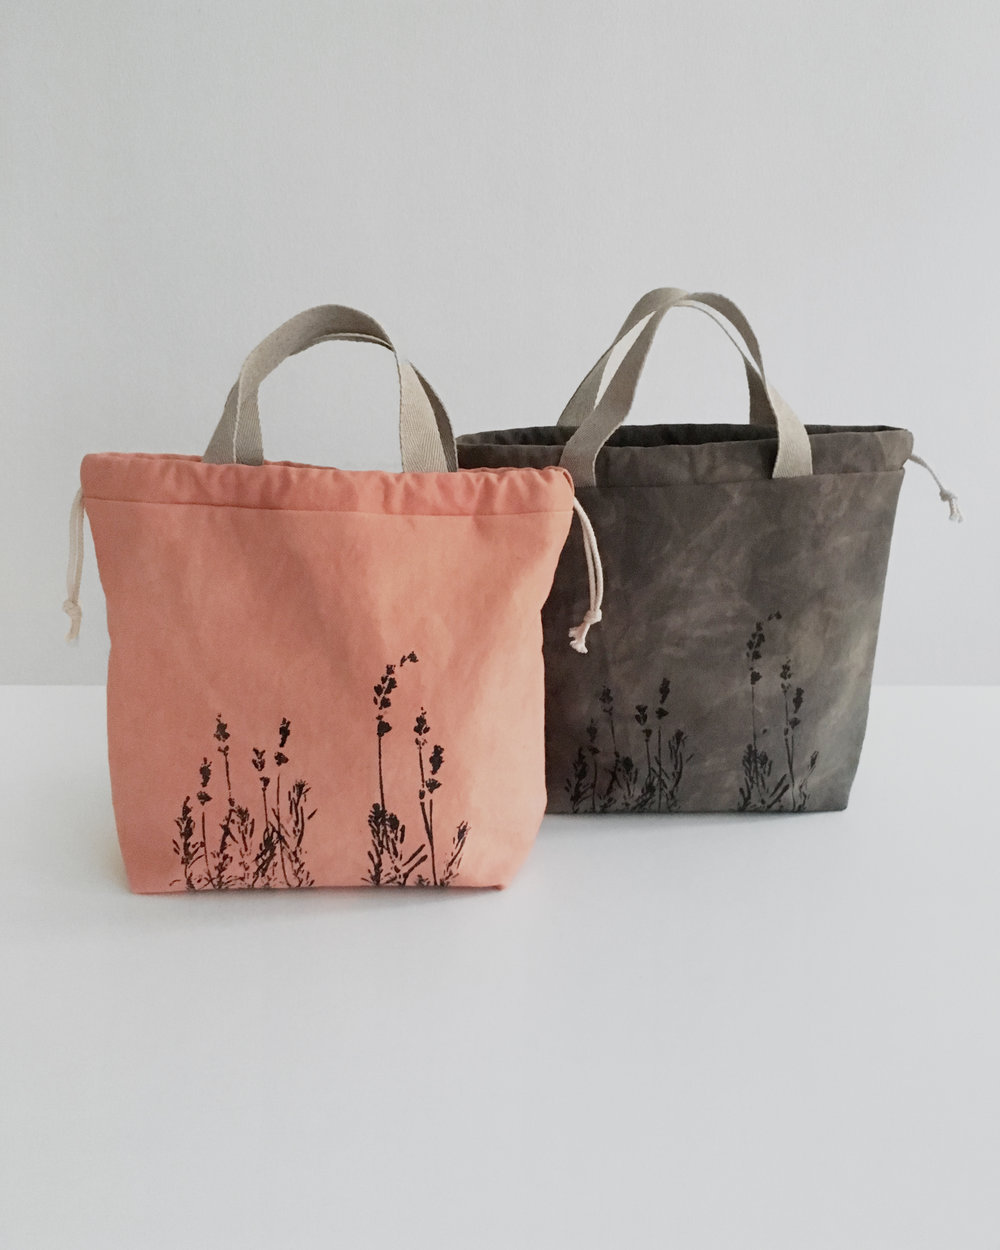 New ethical and sustainably made drawstring project bags for knitters